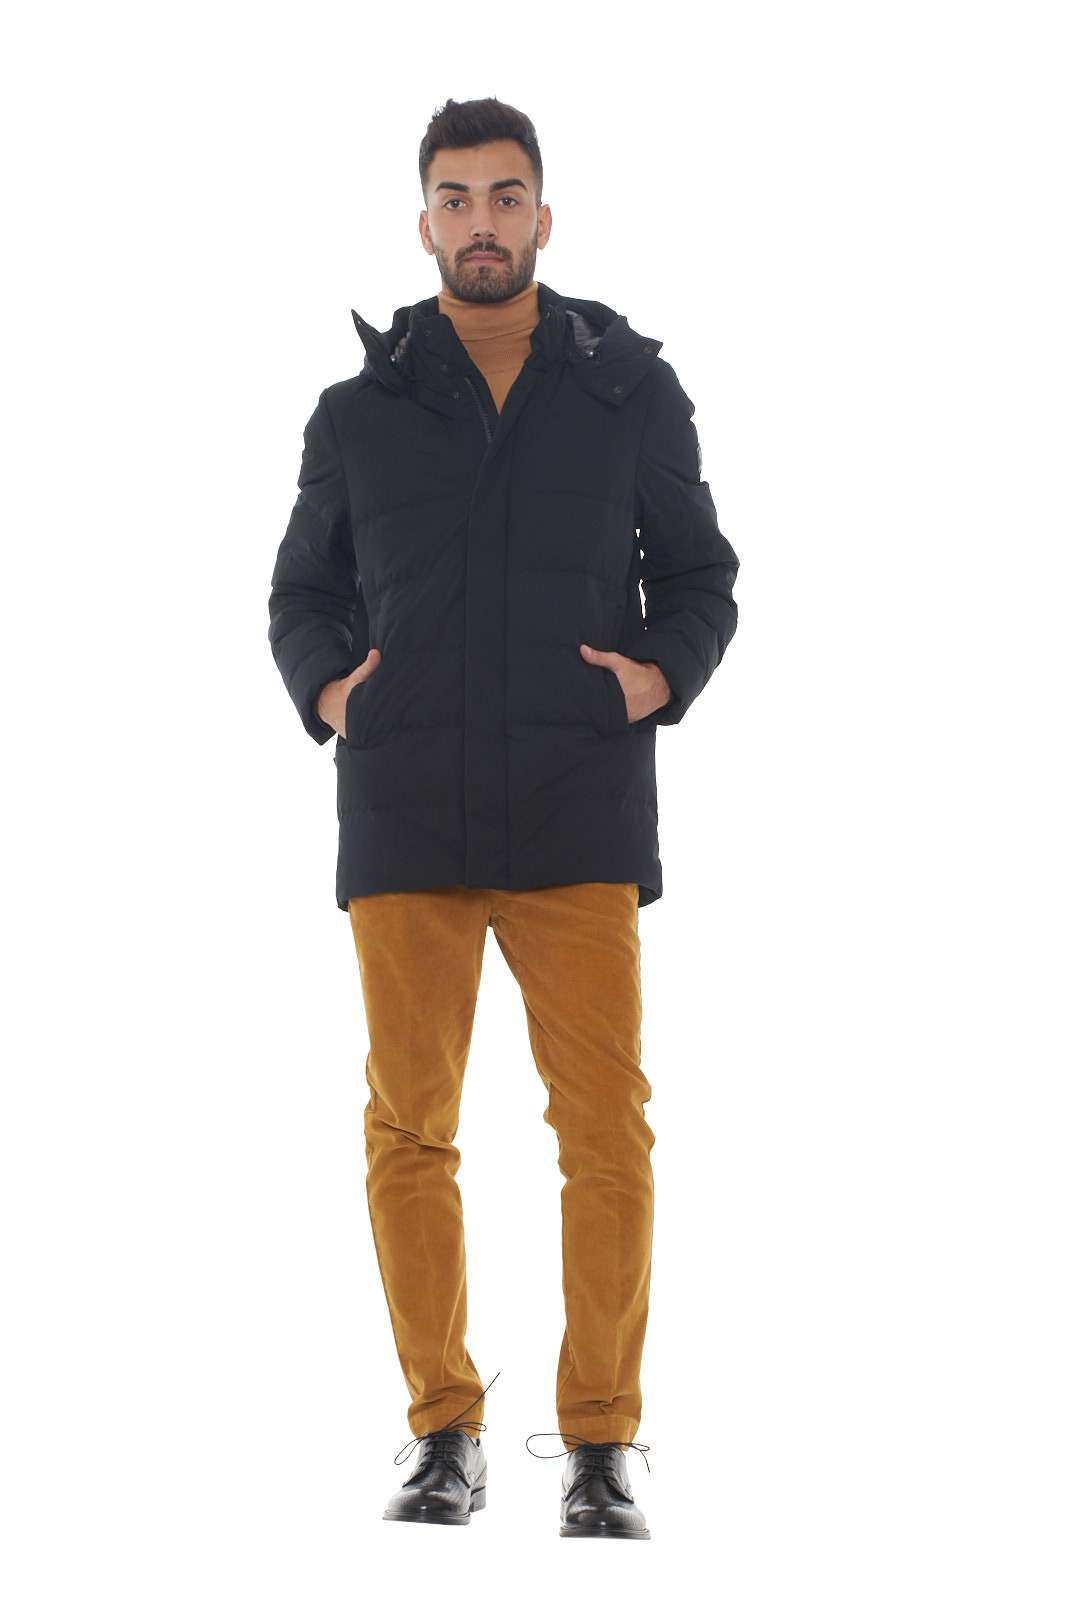 https://www.parmax.com/media/catalog/product/a/i/AI-outlet_parmax-giubbino-uomo-Woolrich-WOLOW0009-D.jpg